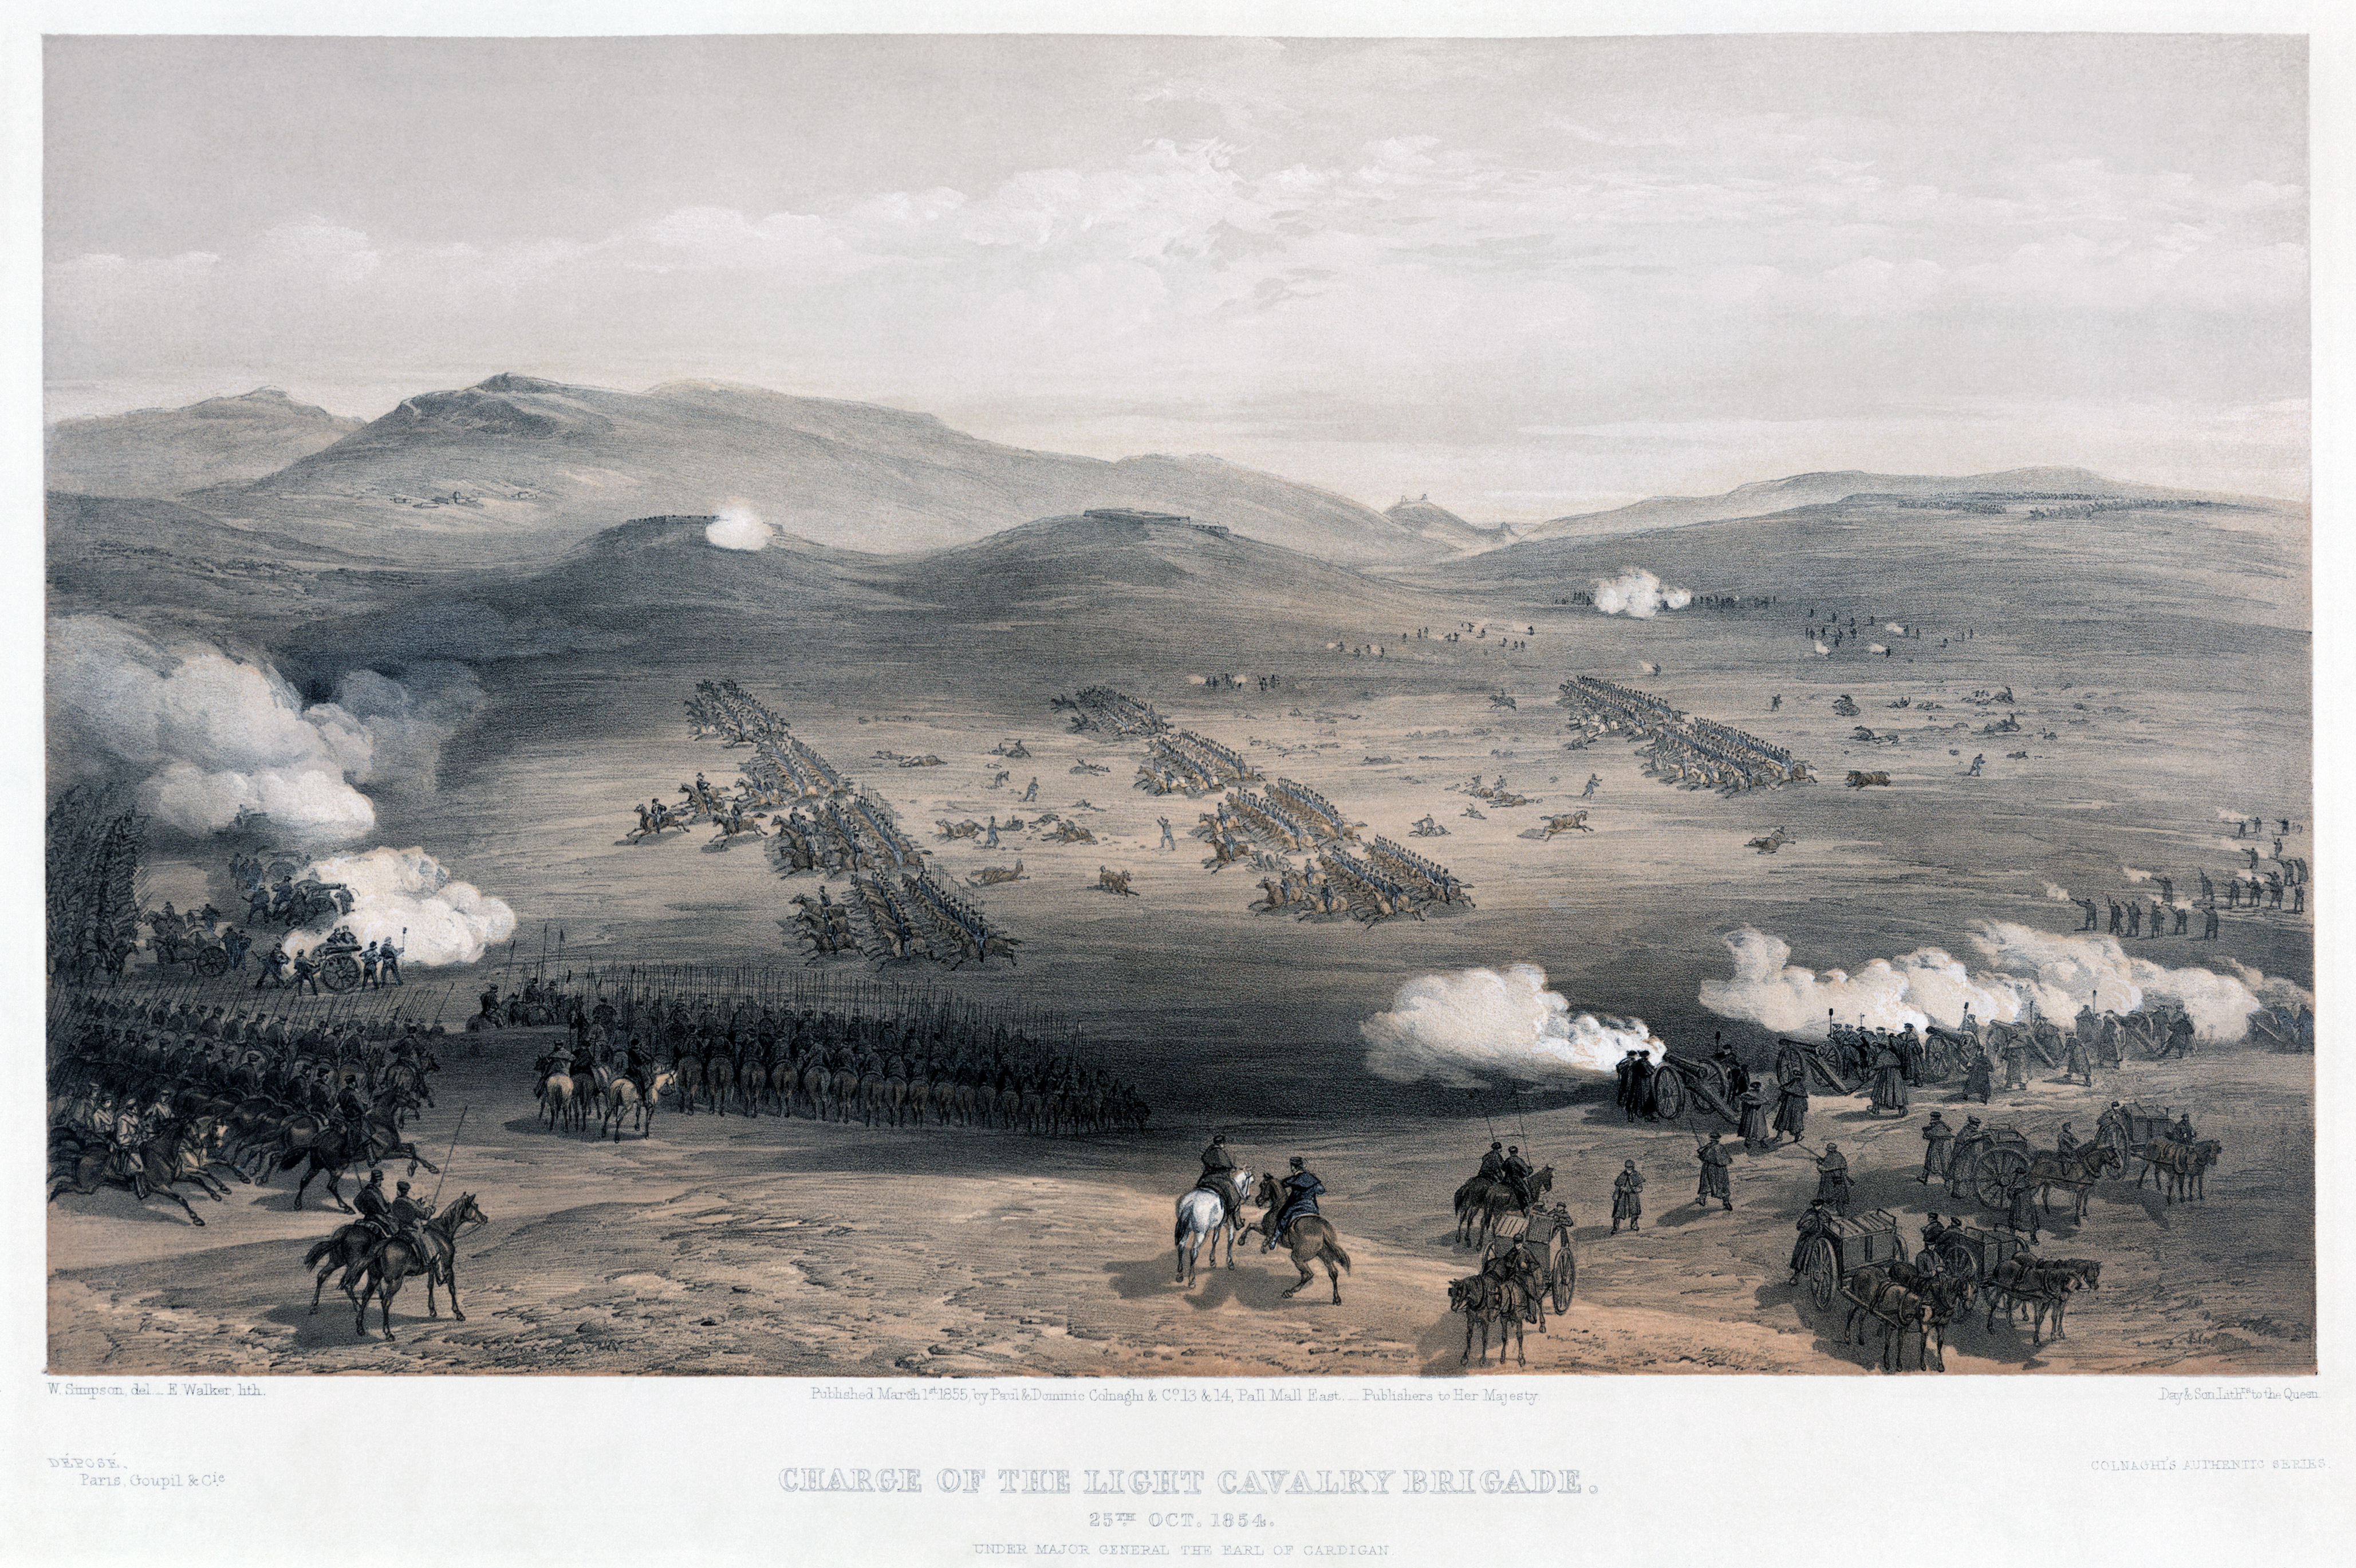 http://upload.wikimedia.org/wikipedia/commons/9/9c/Charge_of_the_Light_Brigade2.jpg